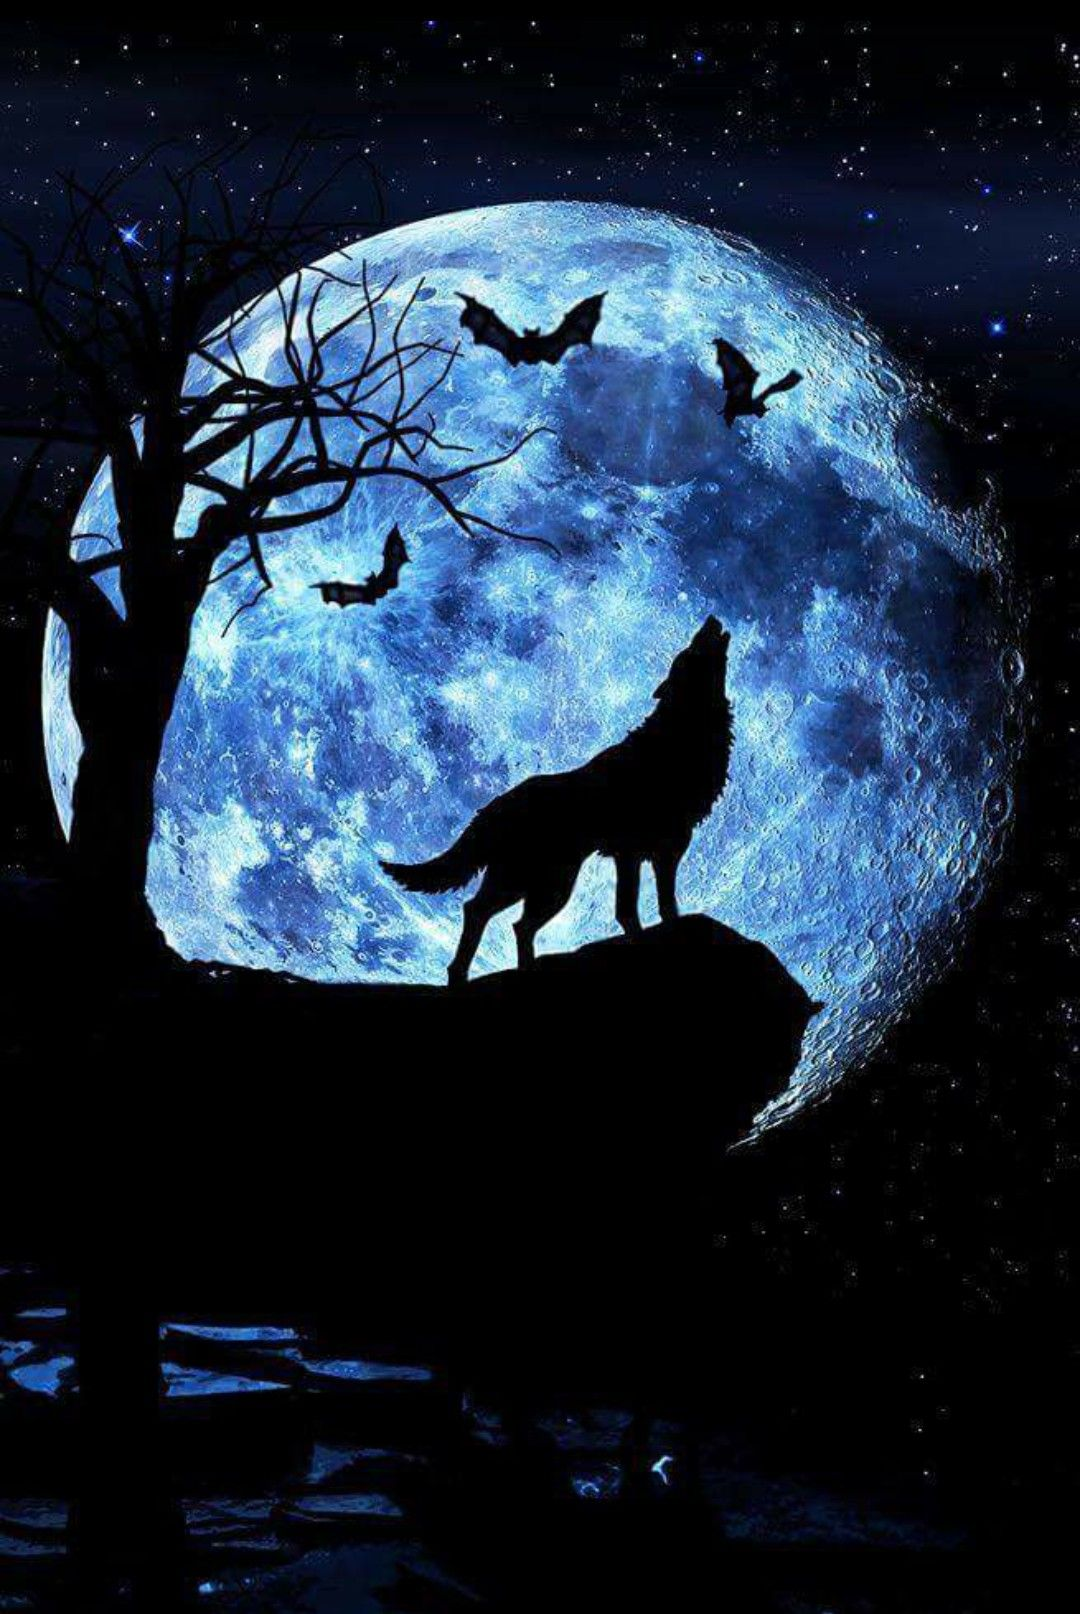 Pin By Andreja On Fantasy Art Wolf Howling Howling At The Moon New Moon Rituals